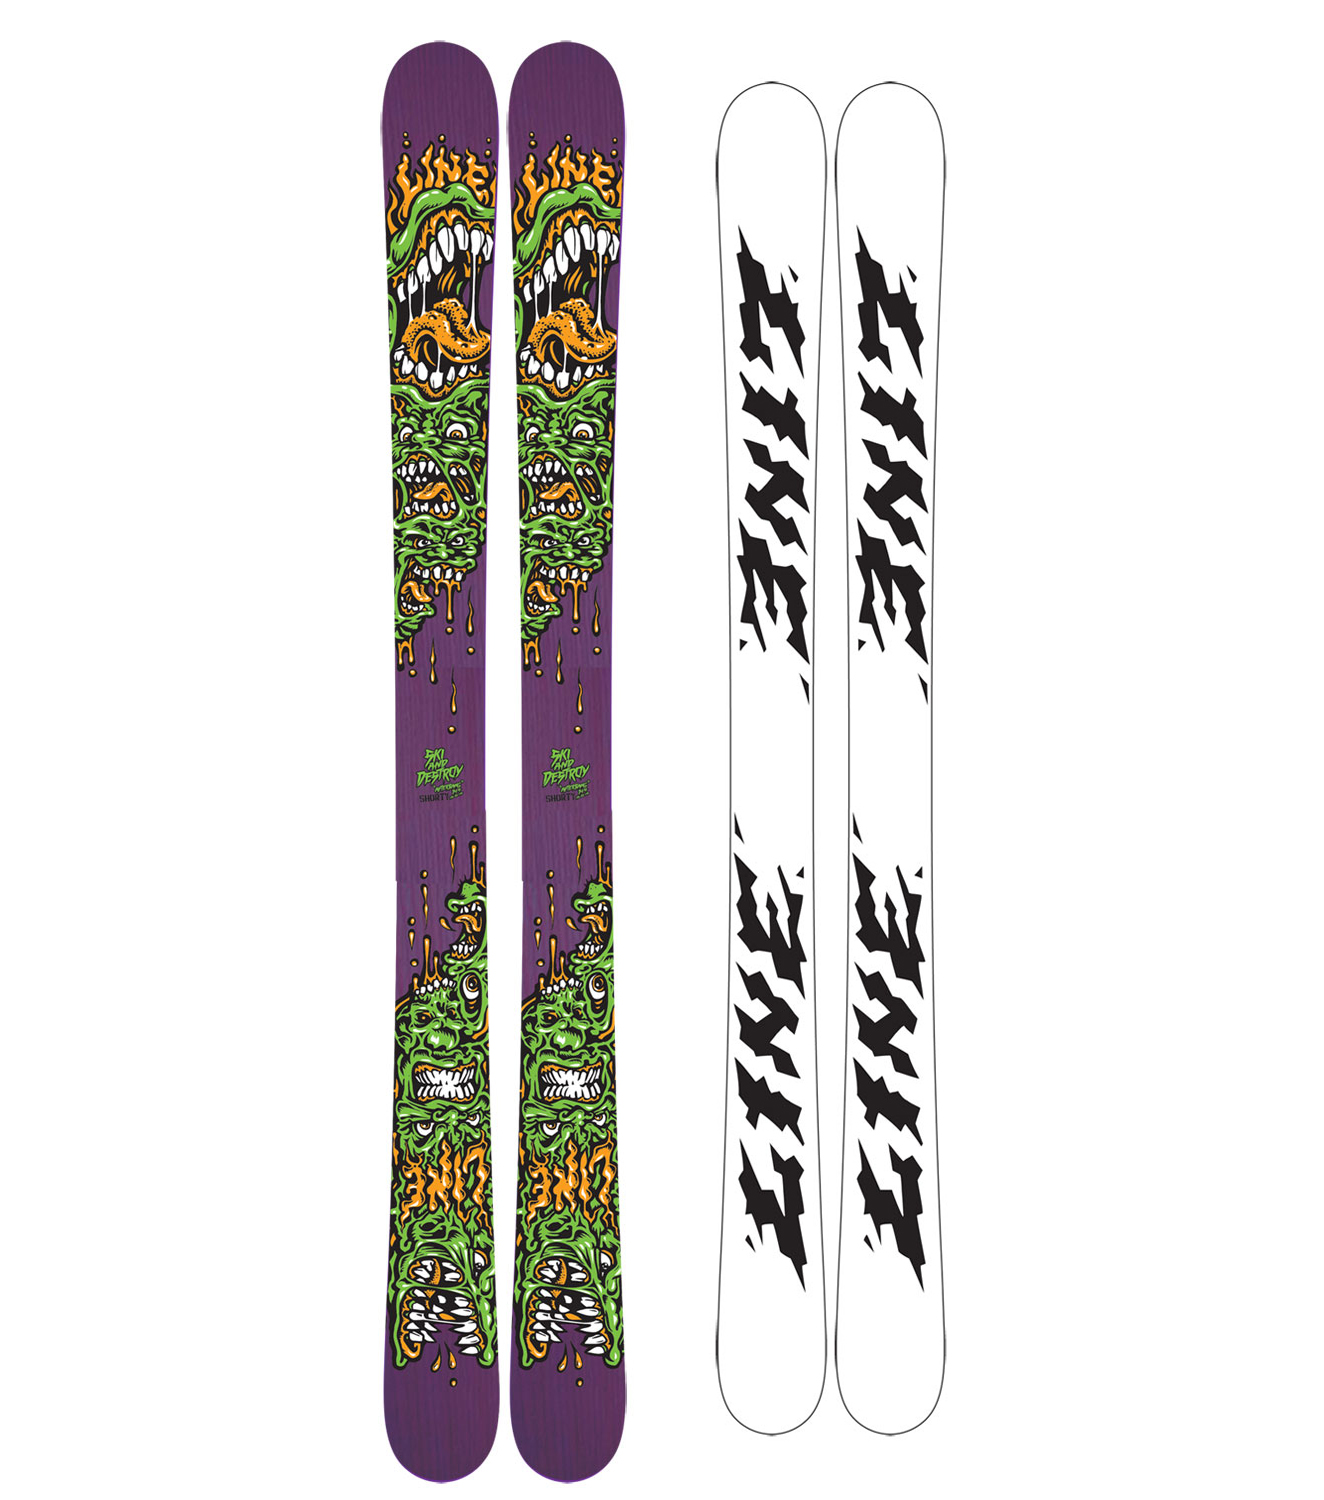 Ski After years of asking, Line has finally designed a high end junior freestyle ski. The 2011 Line Afterbang Shorty Skis is the most advanced junior freestyle ski on the market. With a Maple veneer core this ski will take a lot of abuse with out complaint. The 2010 - 2011 Line Afterbang Short Ski is much like the adult version of the Afterbang but with one less sheet of Maple and no Carbon Ollieband, but do not worry, it has just about the same amount of pop. If you are riding kids skis not designed for the park or adult skis that are too long and expensive, that is because you are an in betweener everyone forgot to make skis for. Now there is a 100% legit, Afterbang construction in your size, with a price to match.Key Features of the Line Afterbang Shorty Skis: Skate Deck Construction 6-ply Maple veneer core Butter Zones Symmetric Flex Symmetric Geometry Fatty Base and Edge Extruded Base Shape: 115/ 88/ 115 Sidecut: 13.5m (144cm) Stance: centered - $109.95